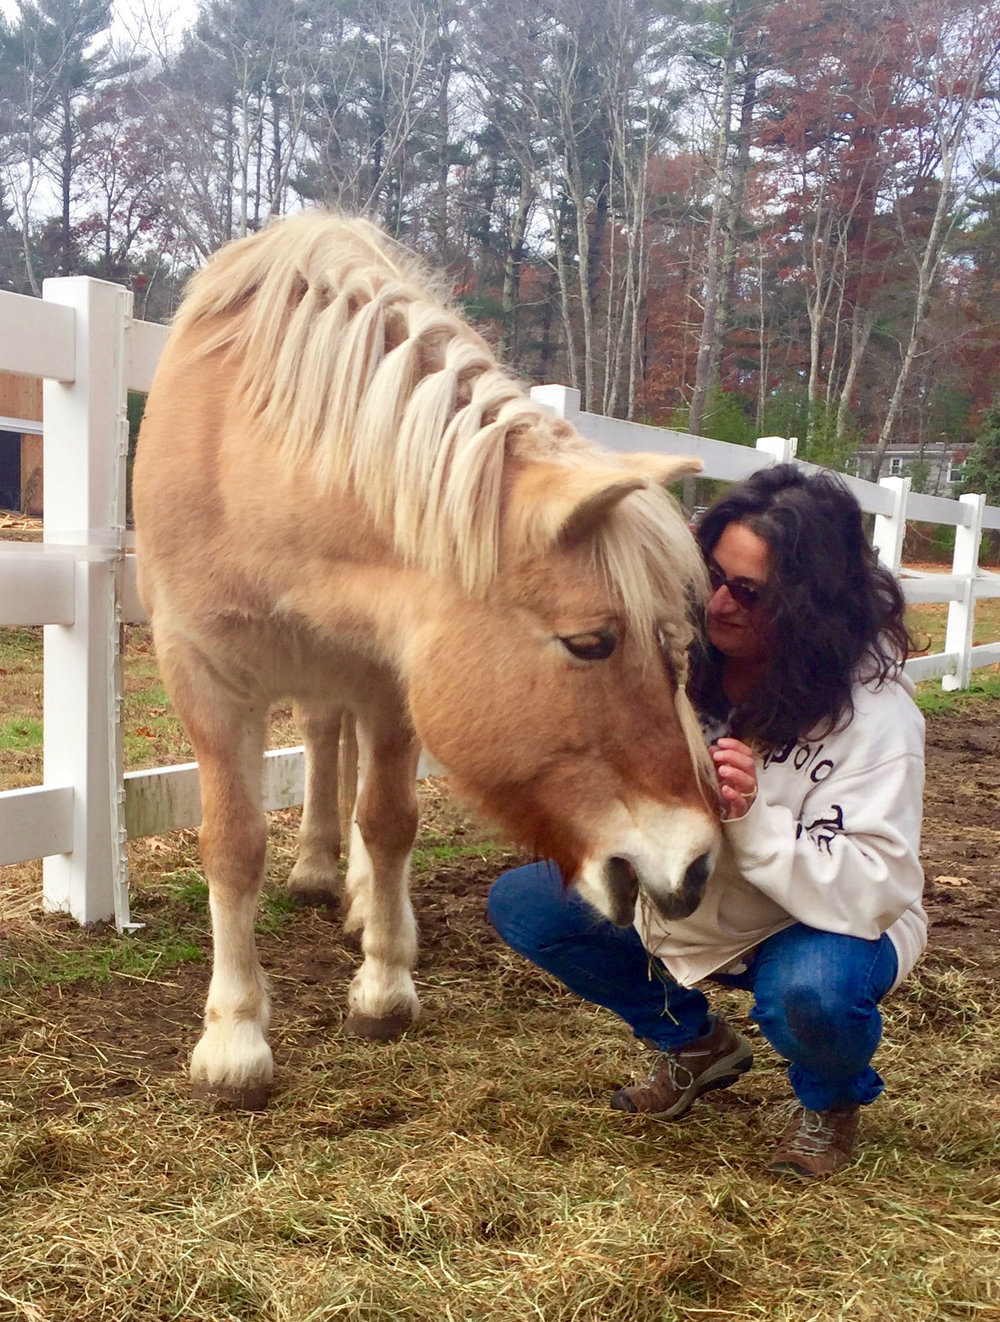 Animal Communication - It's easier than you think. - When I ask an animal a question, I receive their answer in the form of images, feelings, words, thoughts and emotions. For example, if I were to ask an animal what part of their body was not feeling well, I may feel pain in an area of my body that corresponds to theirs. The animal may also send me a picture of the area. I am the conduit for the voice of the animal to communicate to its owner. I work with all animals. It is a sacred experience filled with love, respect and compassion. It is my job as an Animal Communicator to relay the messages between the animal and owner as accurately as possible, bringing enlightened understanding between both parties.I am not a Veterinarian and do not diagnose illness. I can describe the symptoms the animal feels which can be used to assist your Veterinarian and or Chiropractor.Why use an Animal Communicator?To find out the reason behind undesirable behavior.To inquire about how their body feels, where they are sore. This can be used to assist your Veterinarian.(Animal Communicators are never a replacement for Veterinary care, only a complement).To find out if they like their food, bed, saddle, blanket, barn, kennel, sitter, trainer, showing, agility, etc.To find out if the horse/dog you want to buy enjoys the type of riding/competing/lifestyle you desire.To ask if your animal would be accepting of an animal companion.